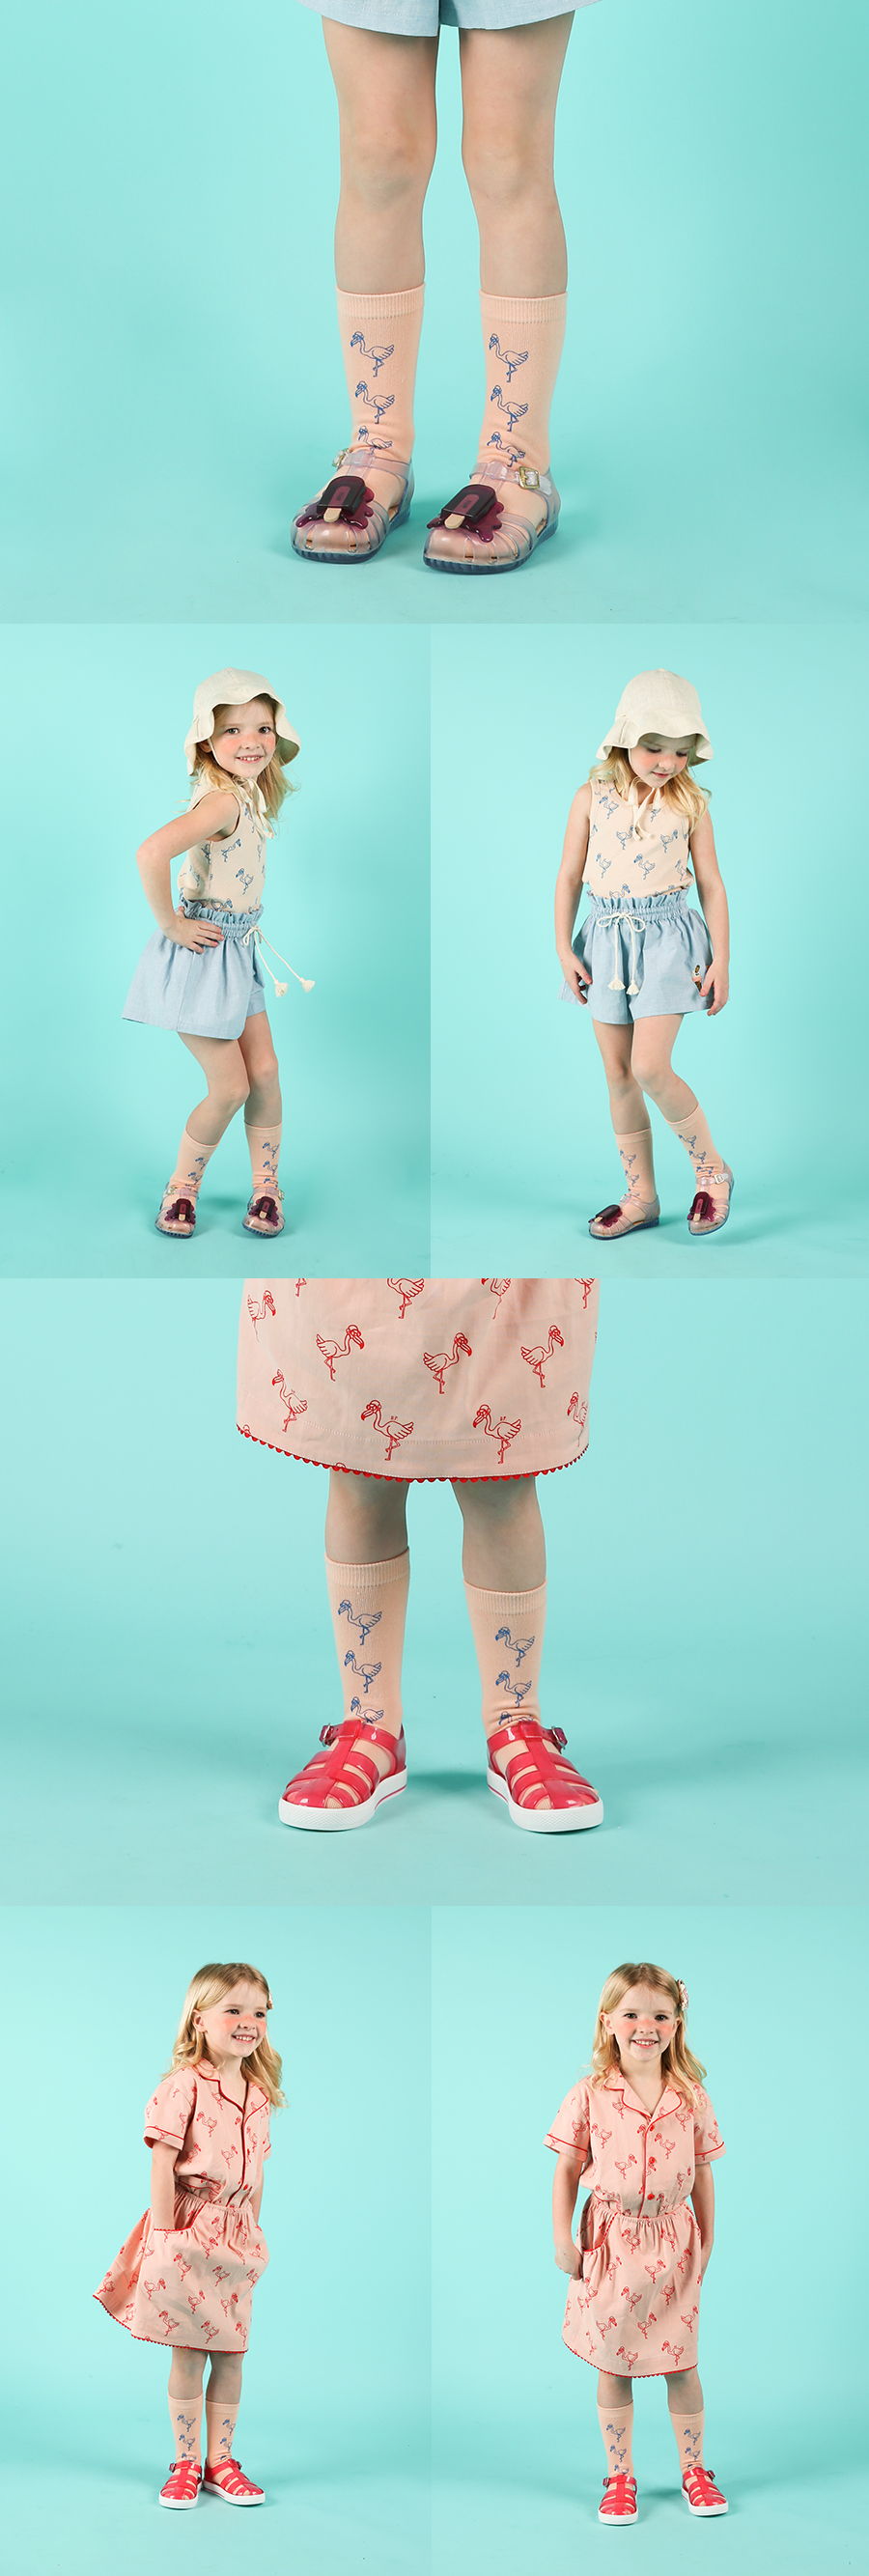 Flamingo knee socks 상세 이미지